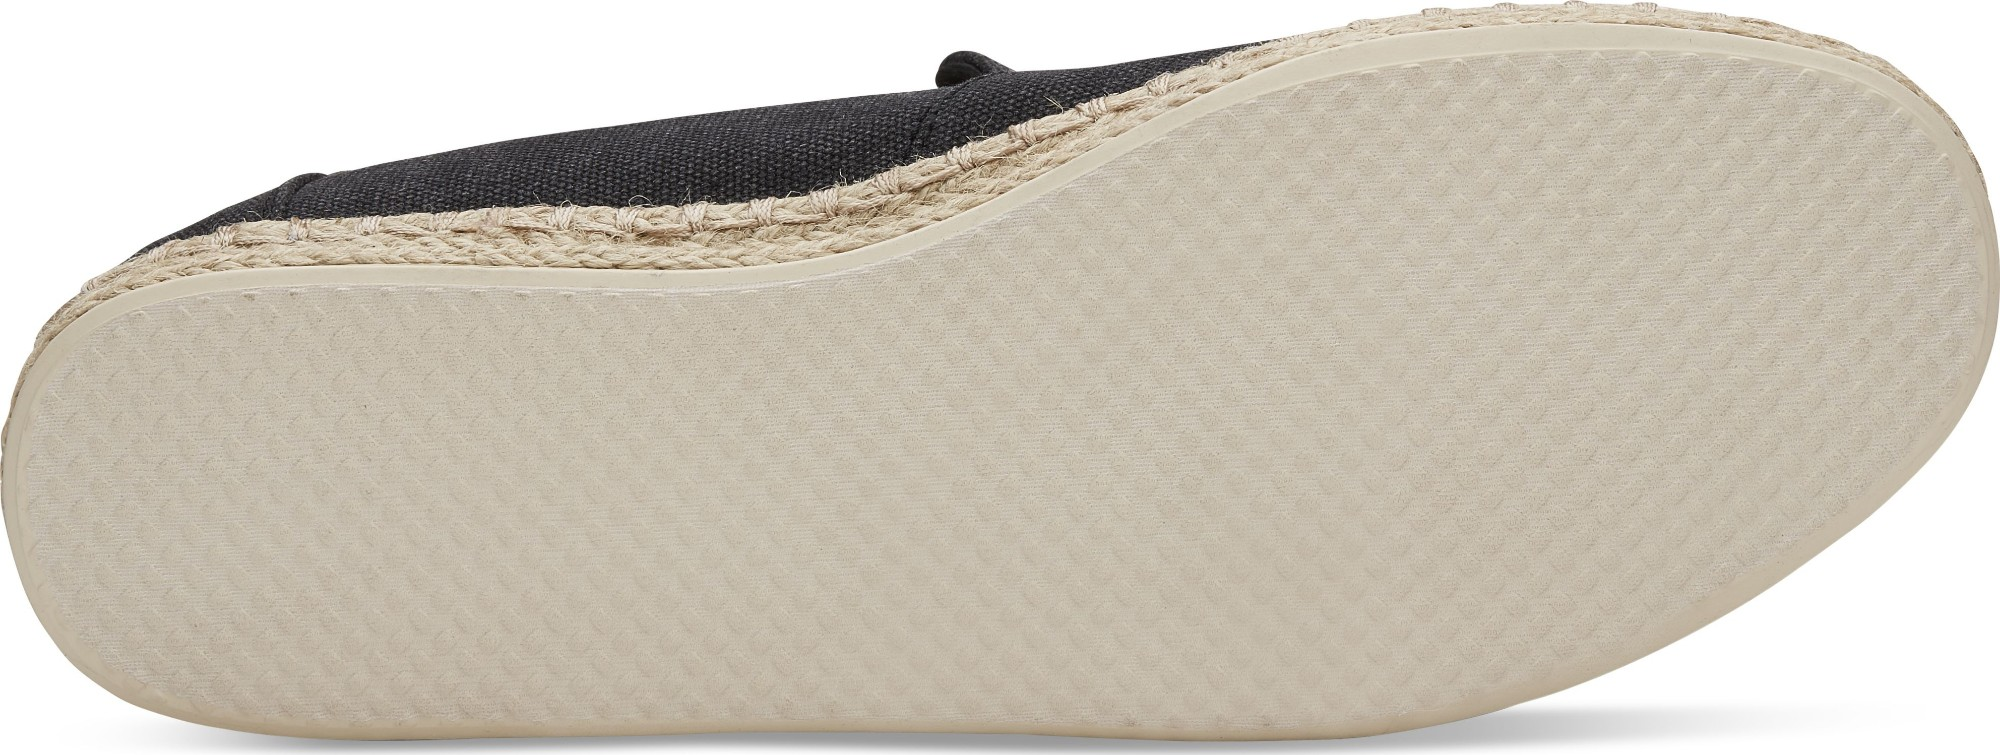 16f4e3ed420 Previous. TOMS Washed Canvas Men s Deconstructed Alpargata Rope Black ...